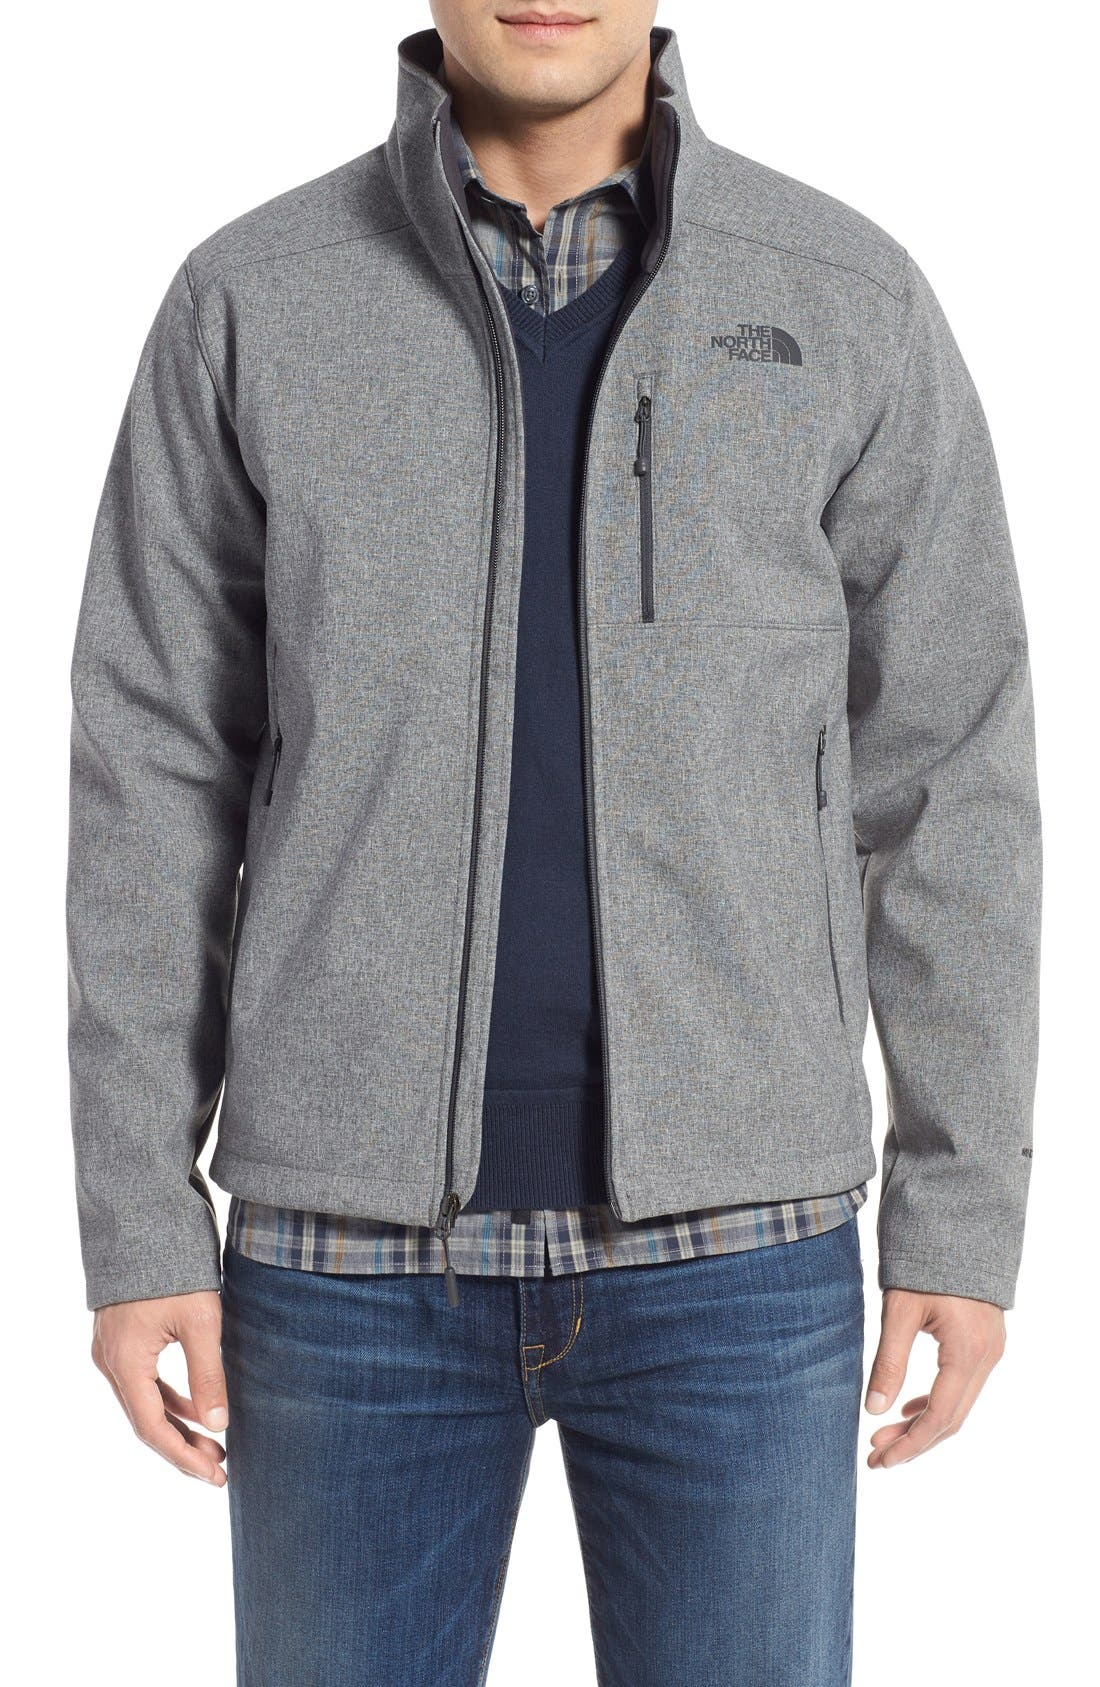 'Apex Bionic 2' Windproof & Water Resistant Soft Shell Jacket,                         Main,                         color, Tnf Medium Grey Heather